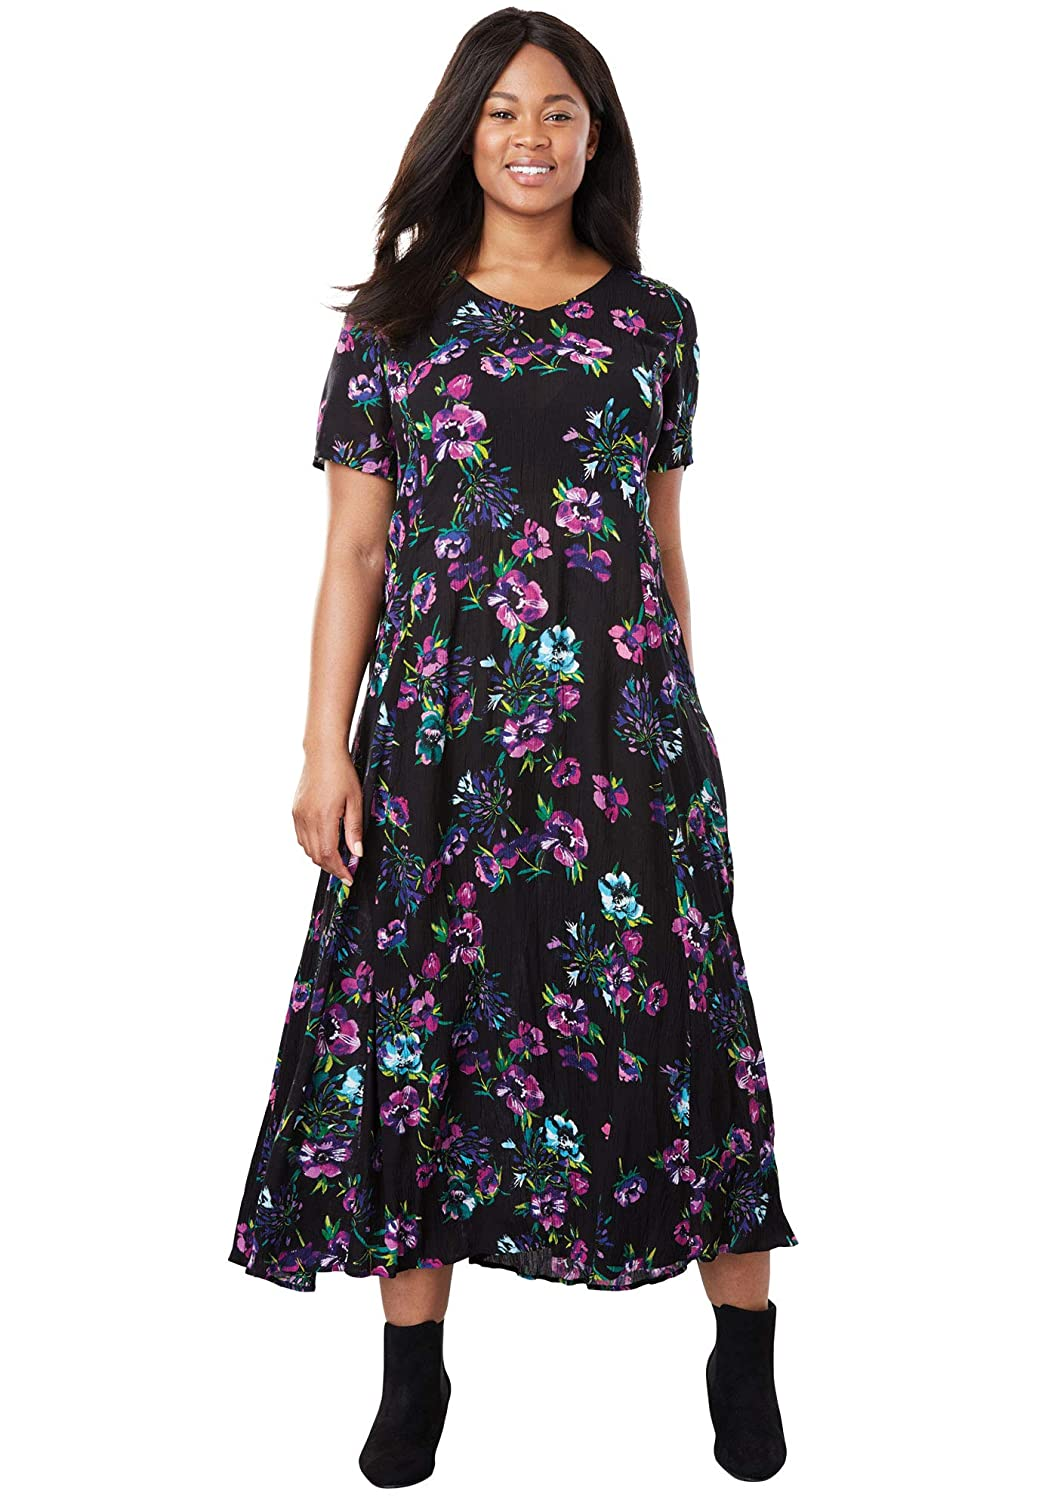 3b21751f32e Woman Within Women's Plus Size Crinkle Dress at Amazon Women's Clothing  store: